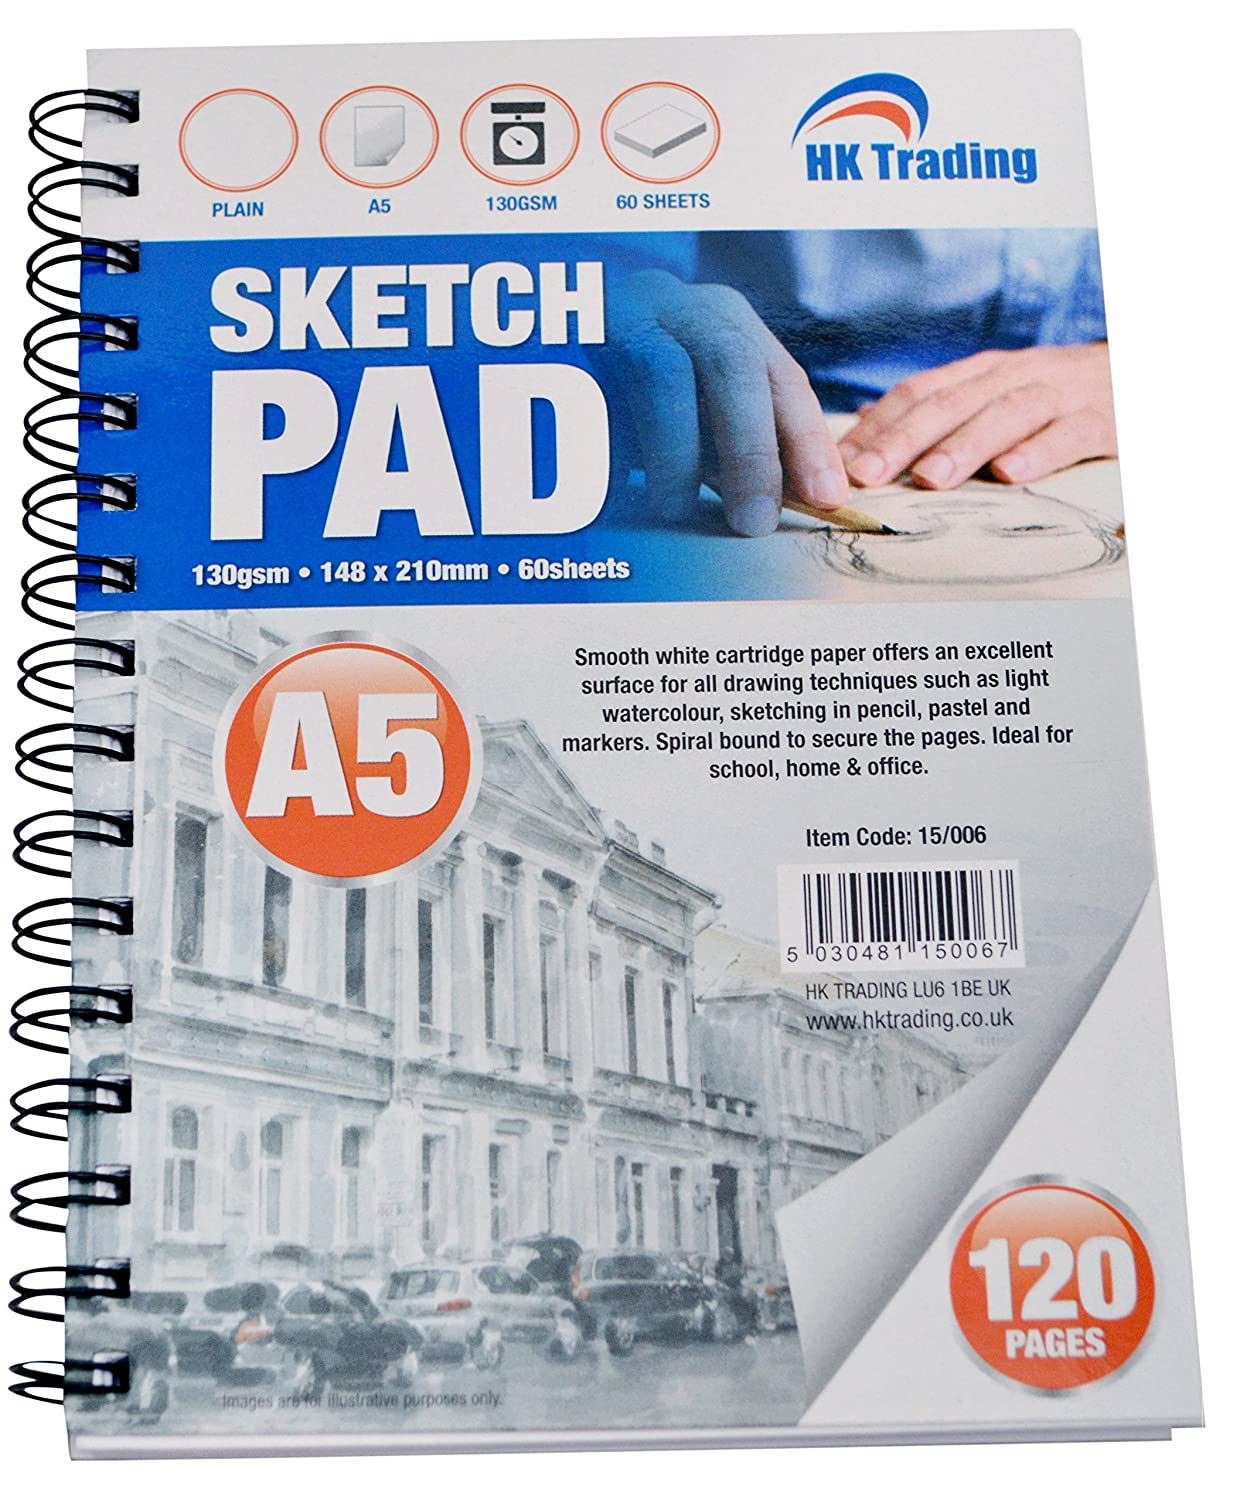 3 x A5 DRAWING SKETCH PAD - 130gsm 60 sheets perforated thick cartridge paper - FREE DELIVERY